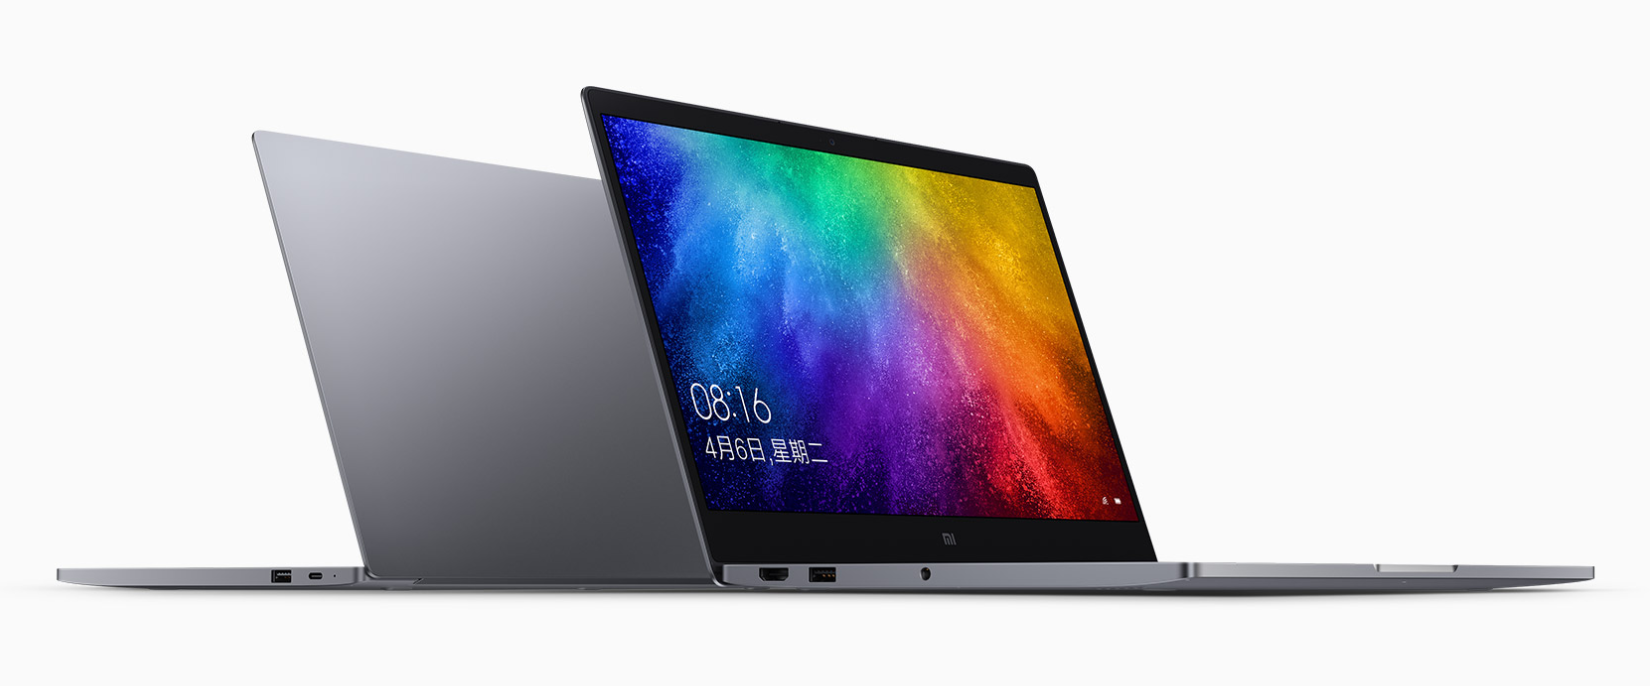 Xiaomi Mi Notebook Air 13.3 i5-8250U 8/256 GB - GearBest